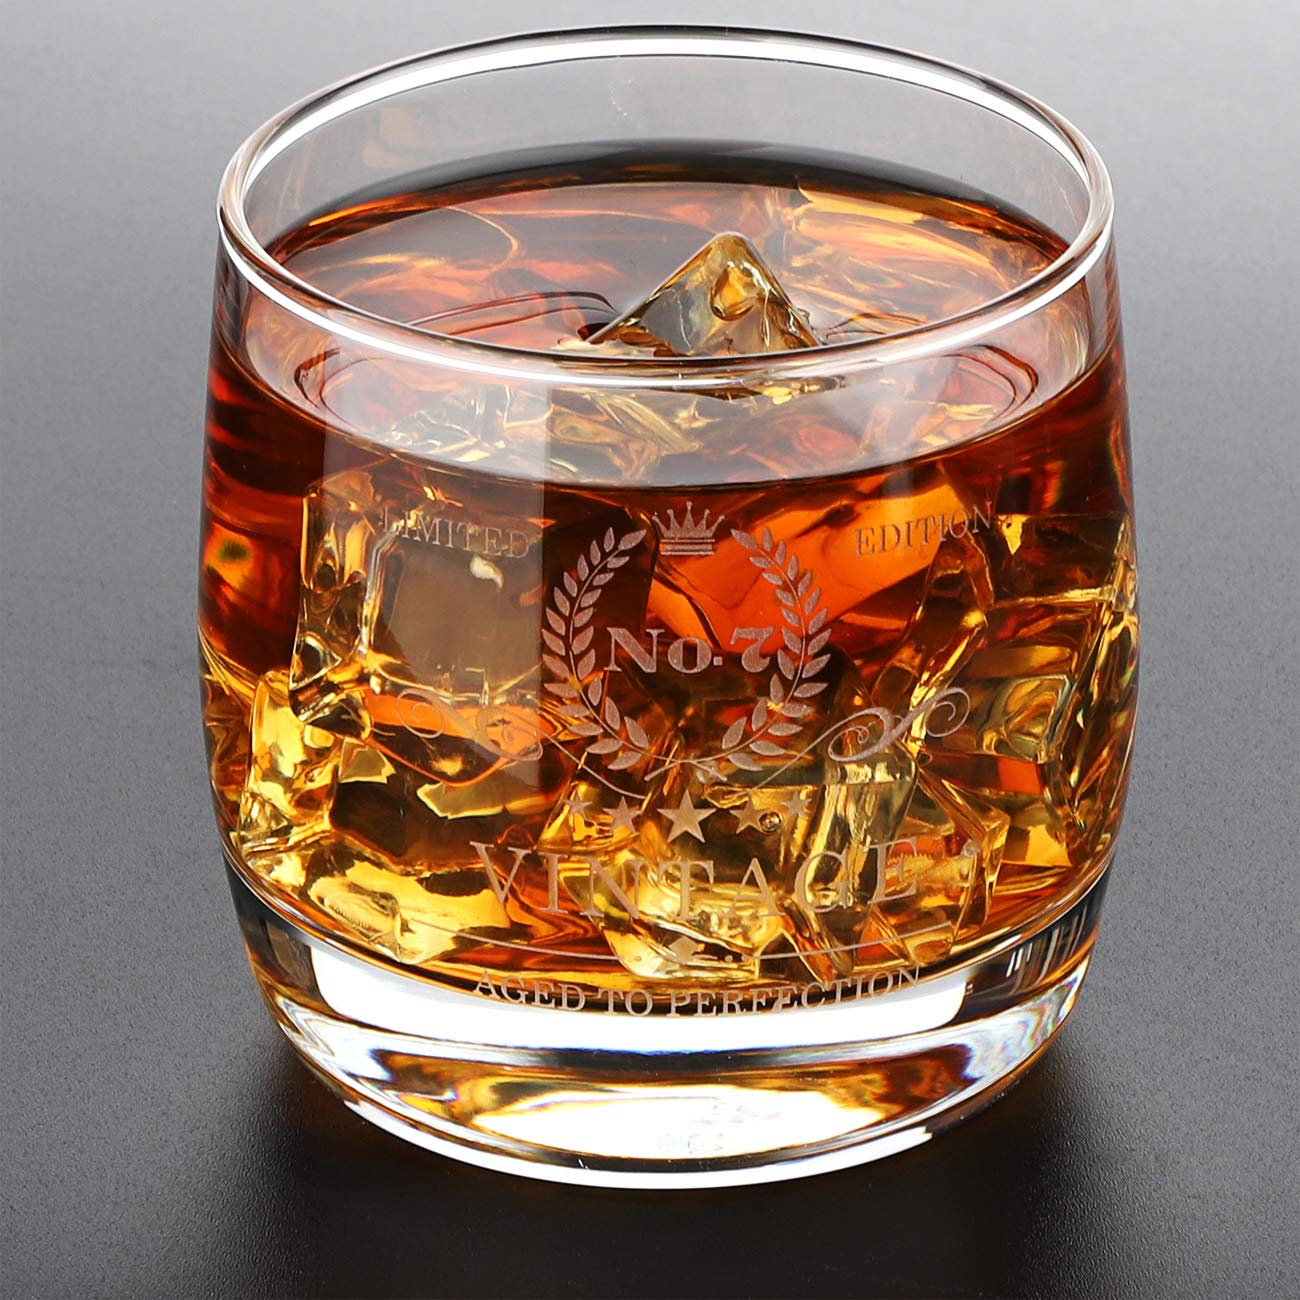 RMBO-US Whiskey Glass - Premium Tasting Tumblers for Whiskey, Scotch Glasses, Bourbon & Cocktail - Laser Engraved, Hand Blown Lead Free Crystal Tasting Cups - A Cheerful Anniversary Gift